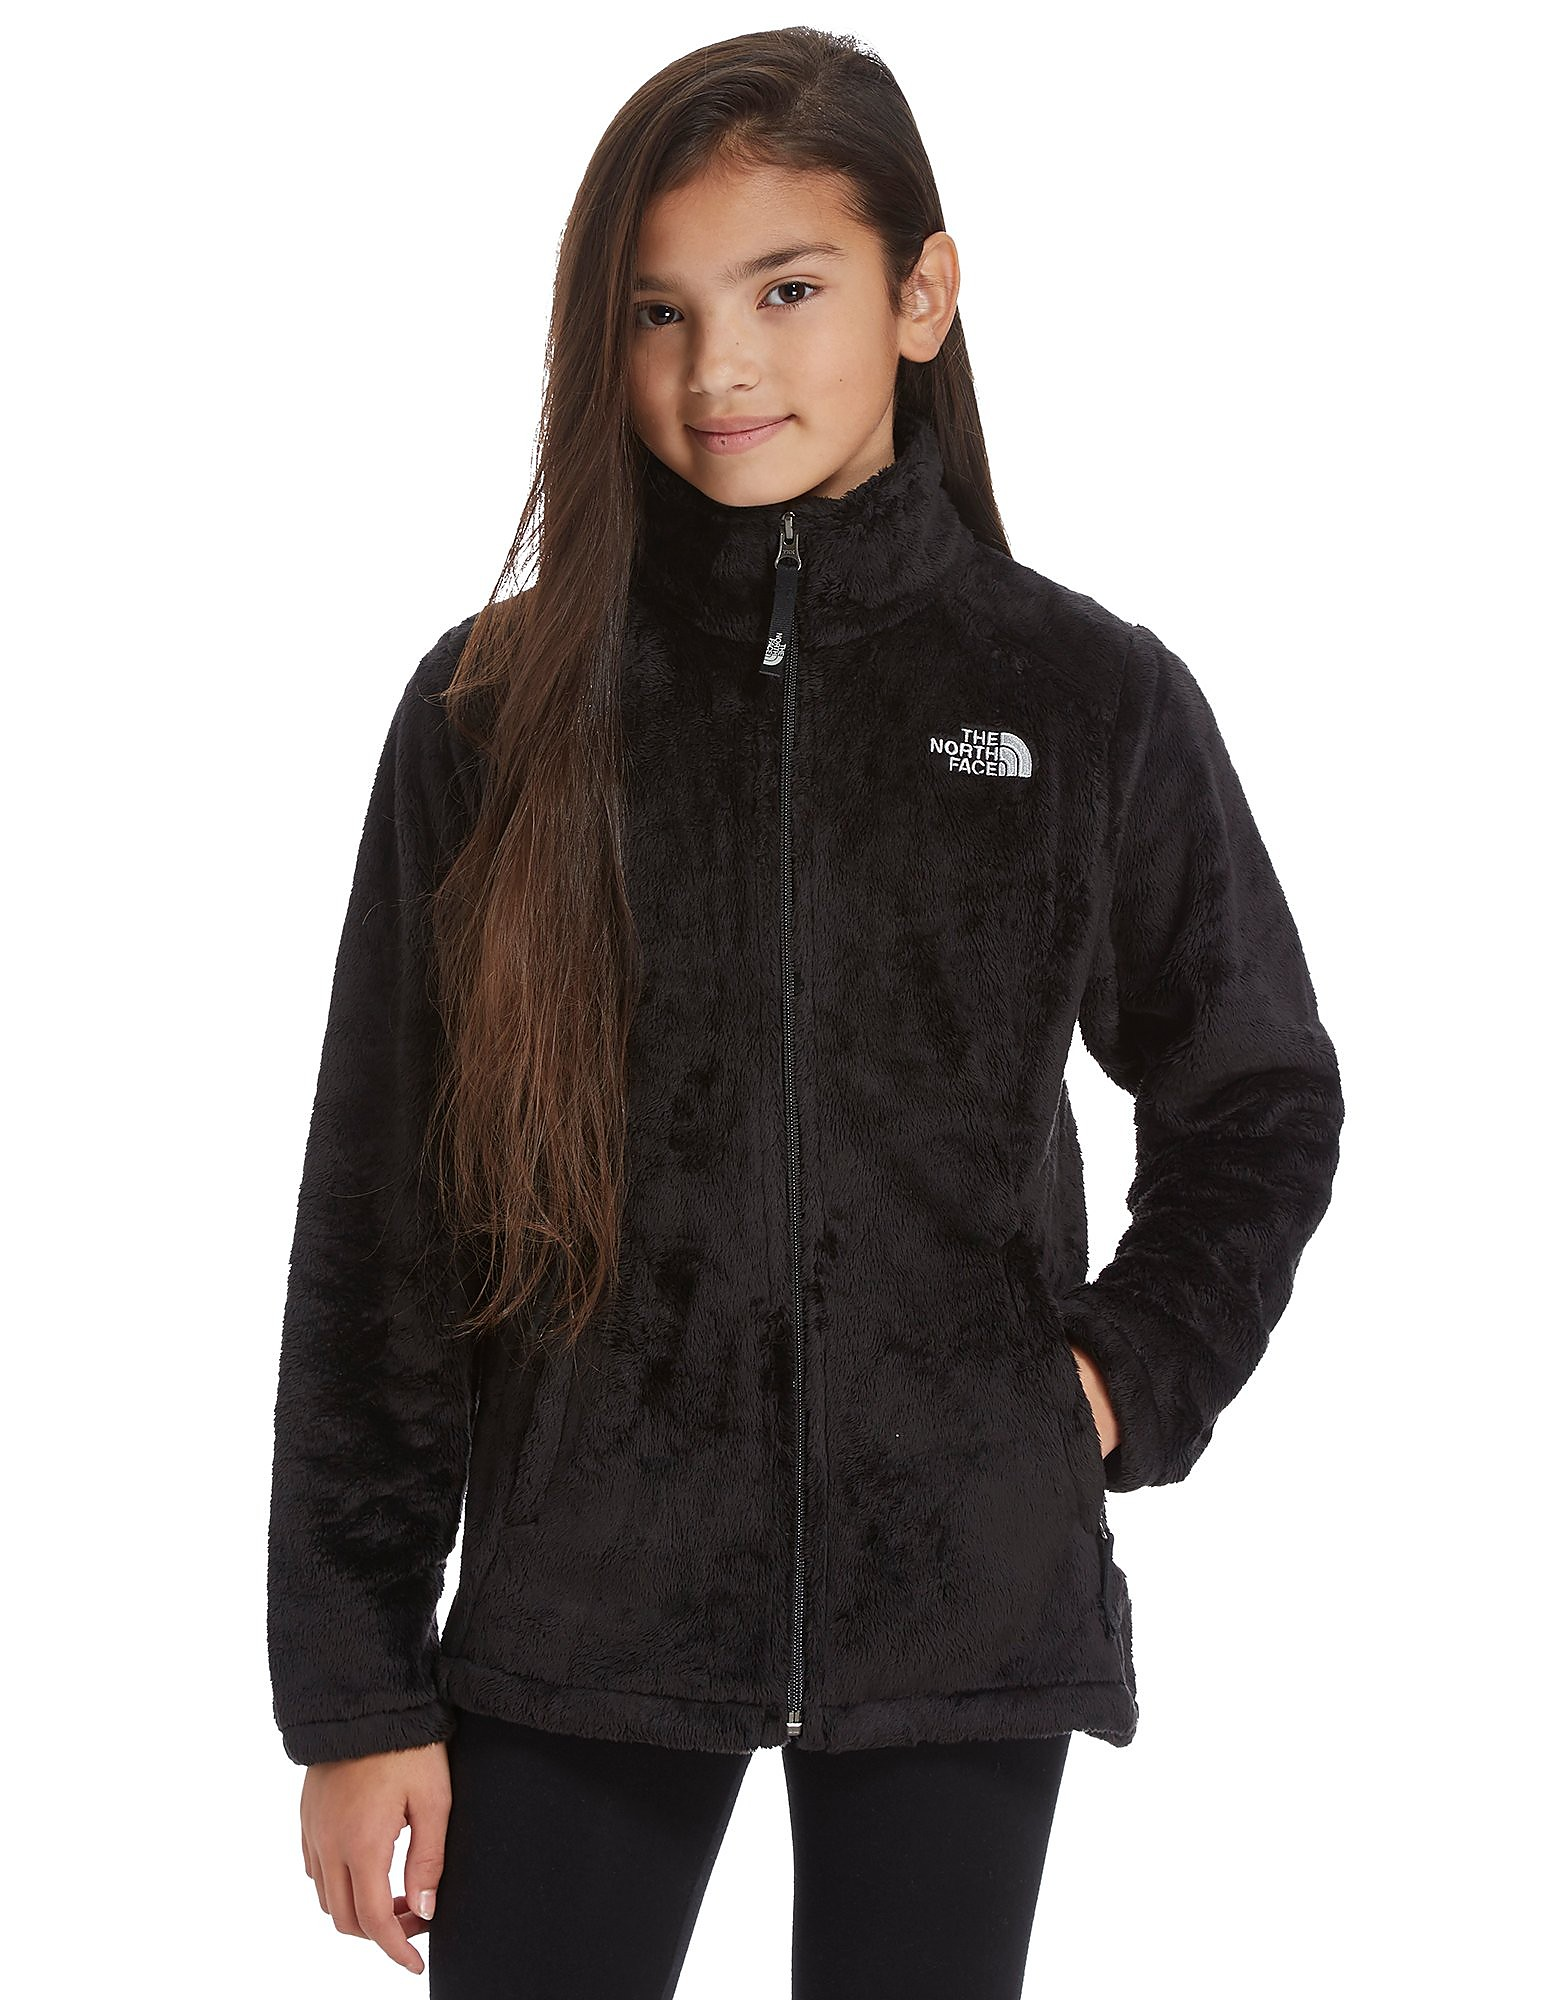 The North Face Mädchen Osolita Furry Jacke Kinder